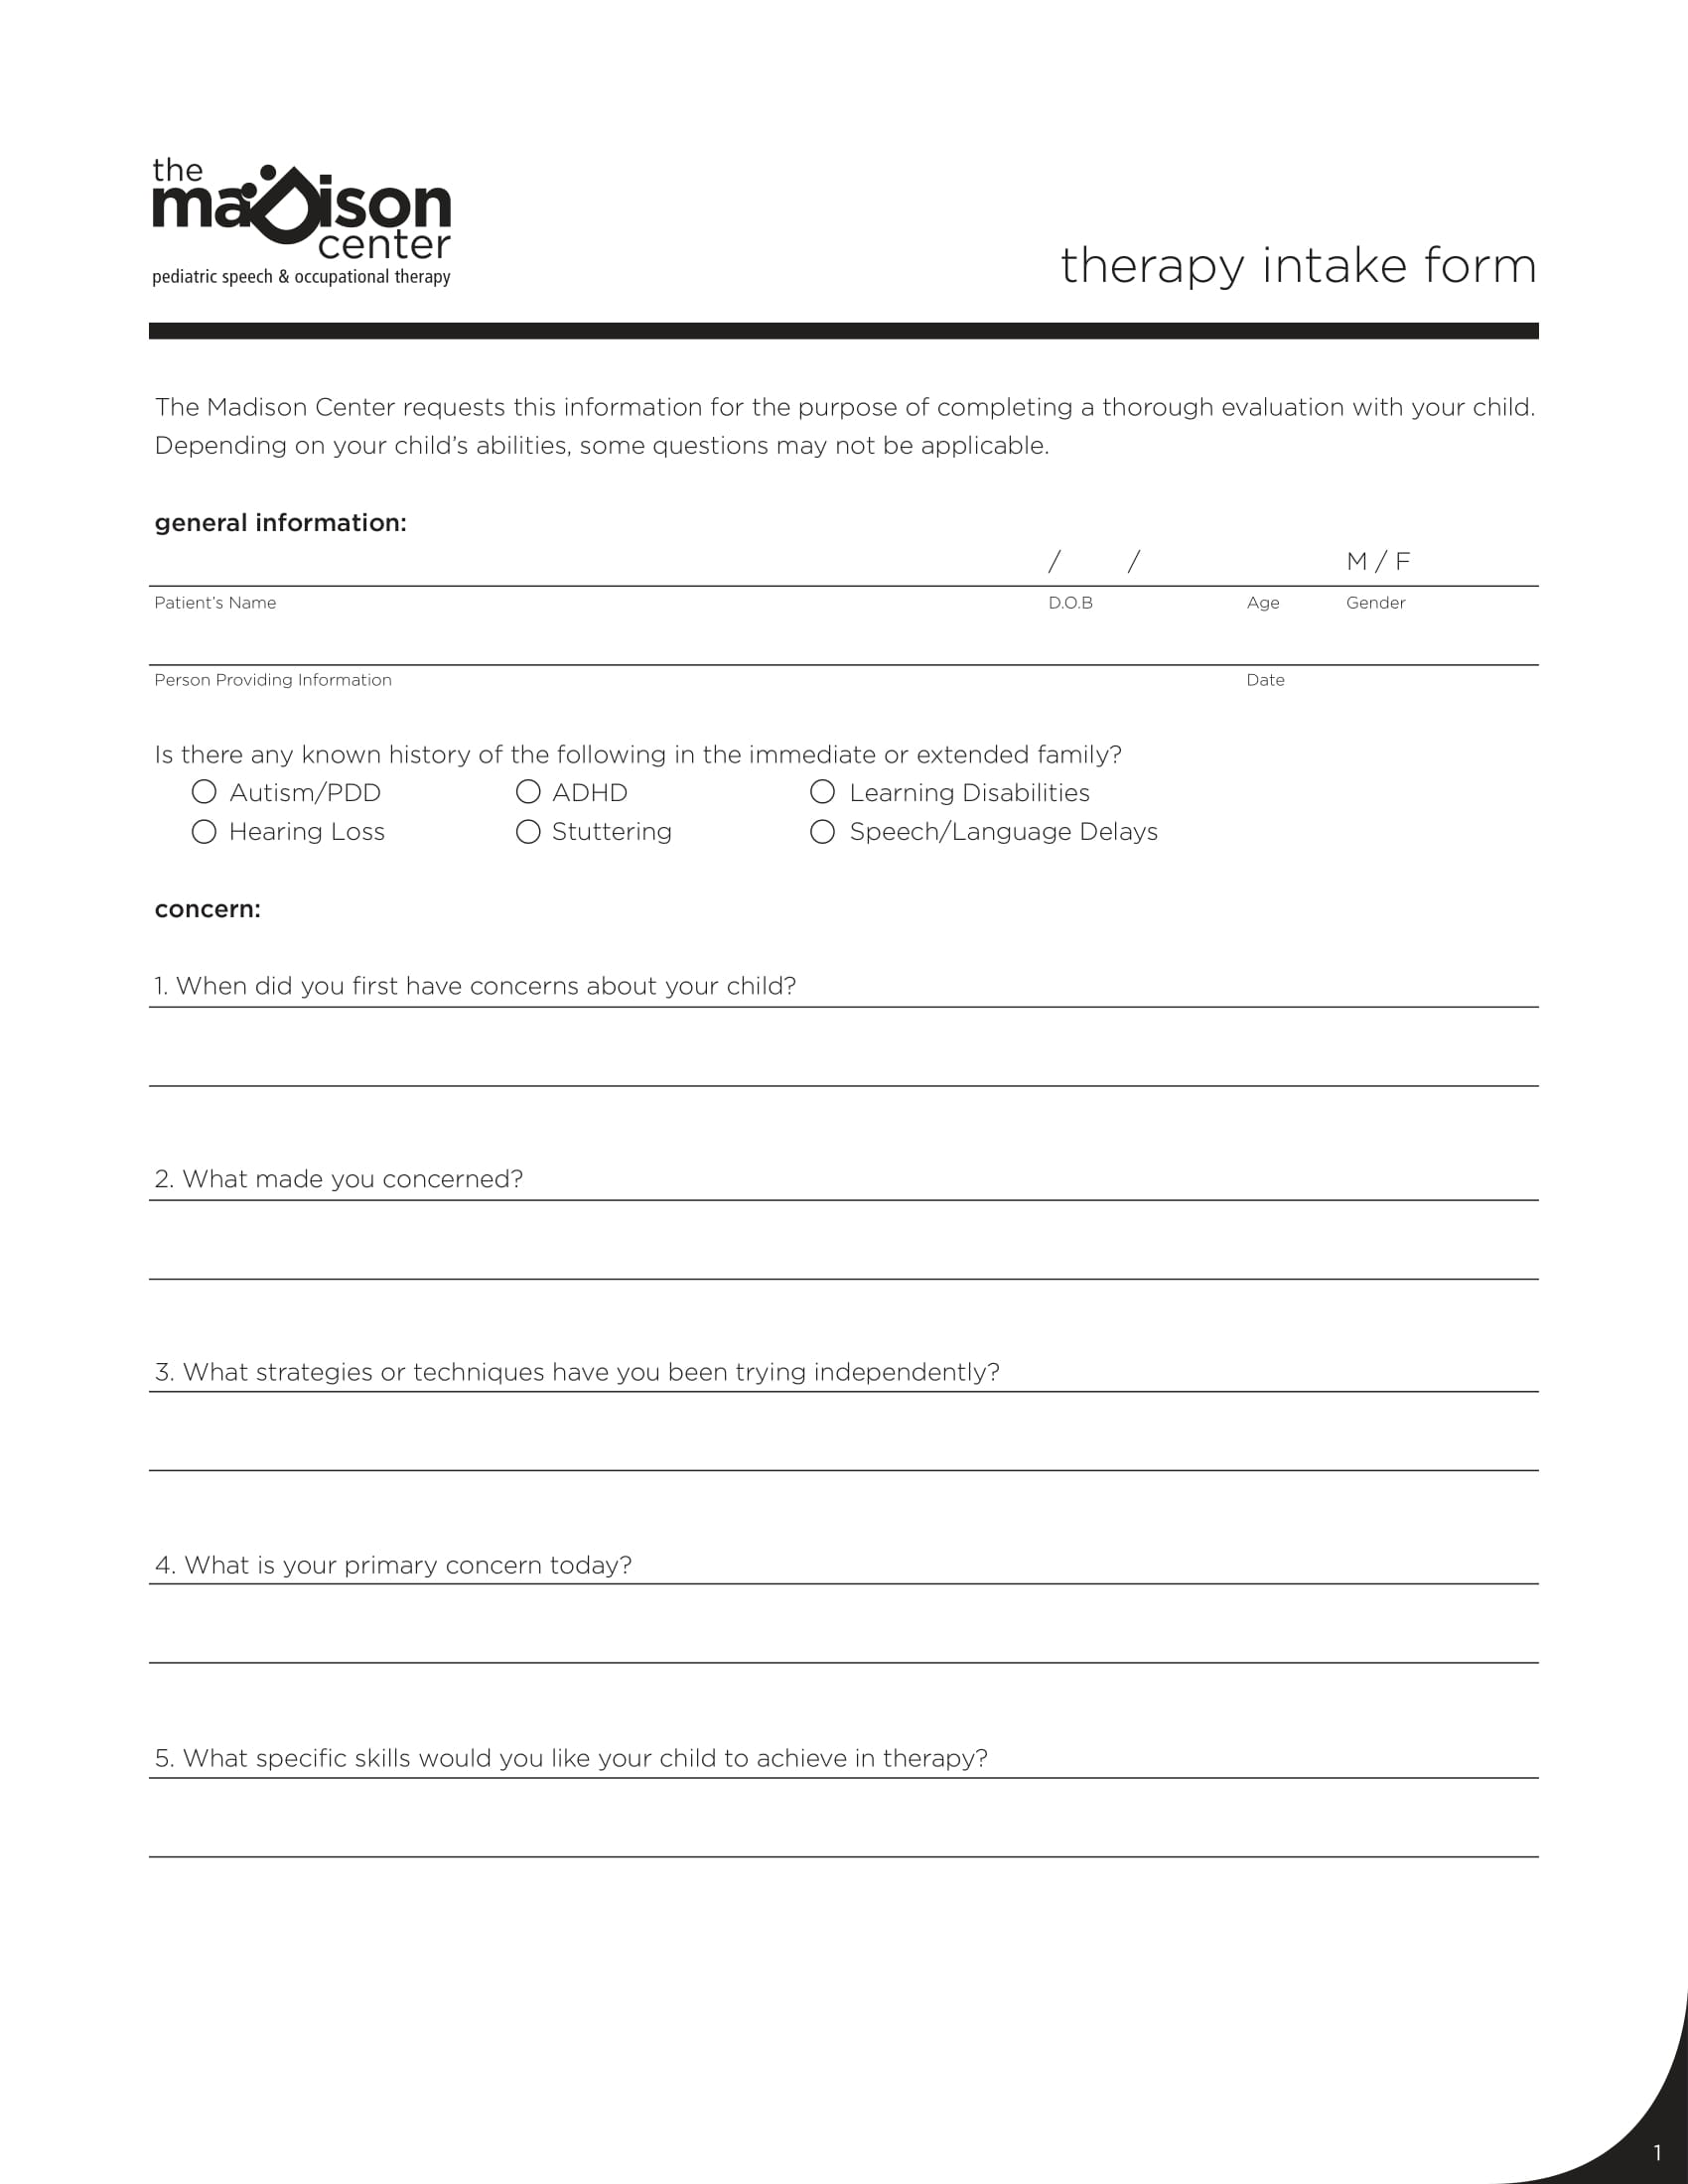 therapy intake form sample 1